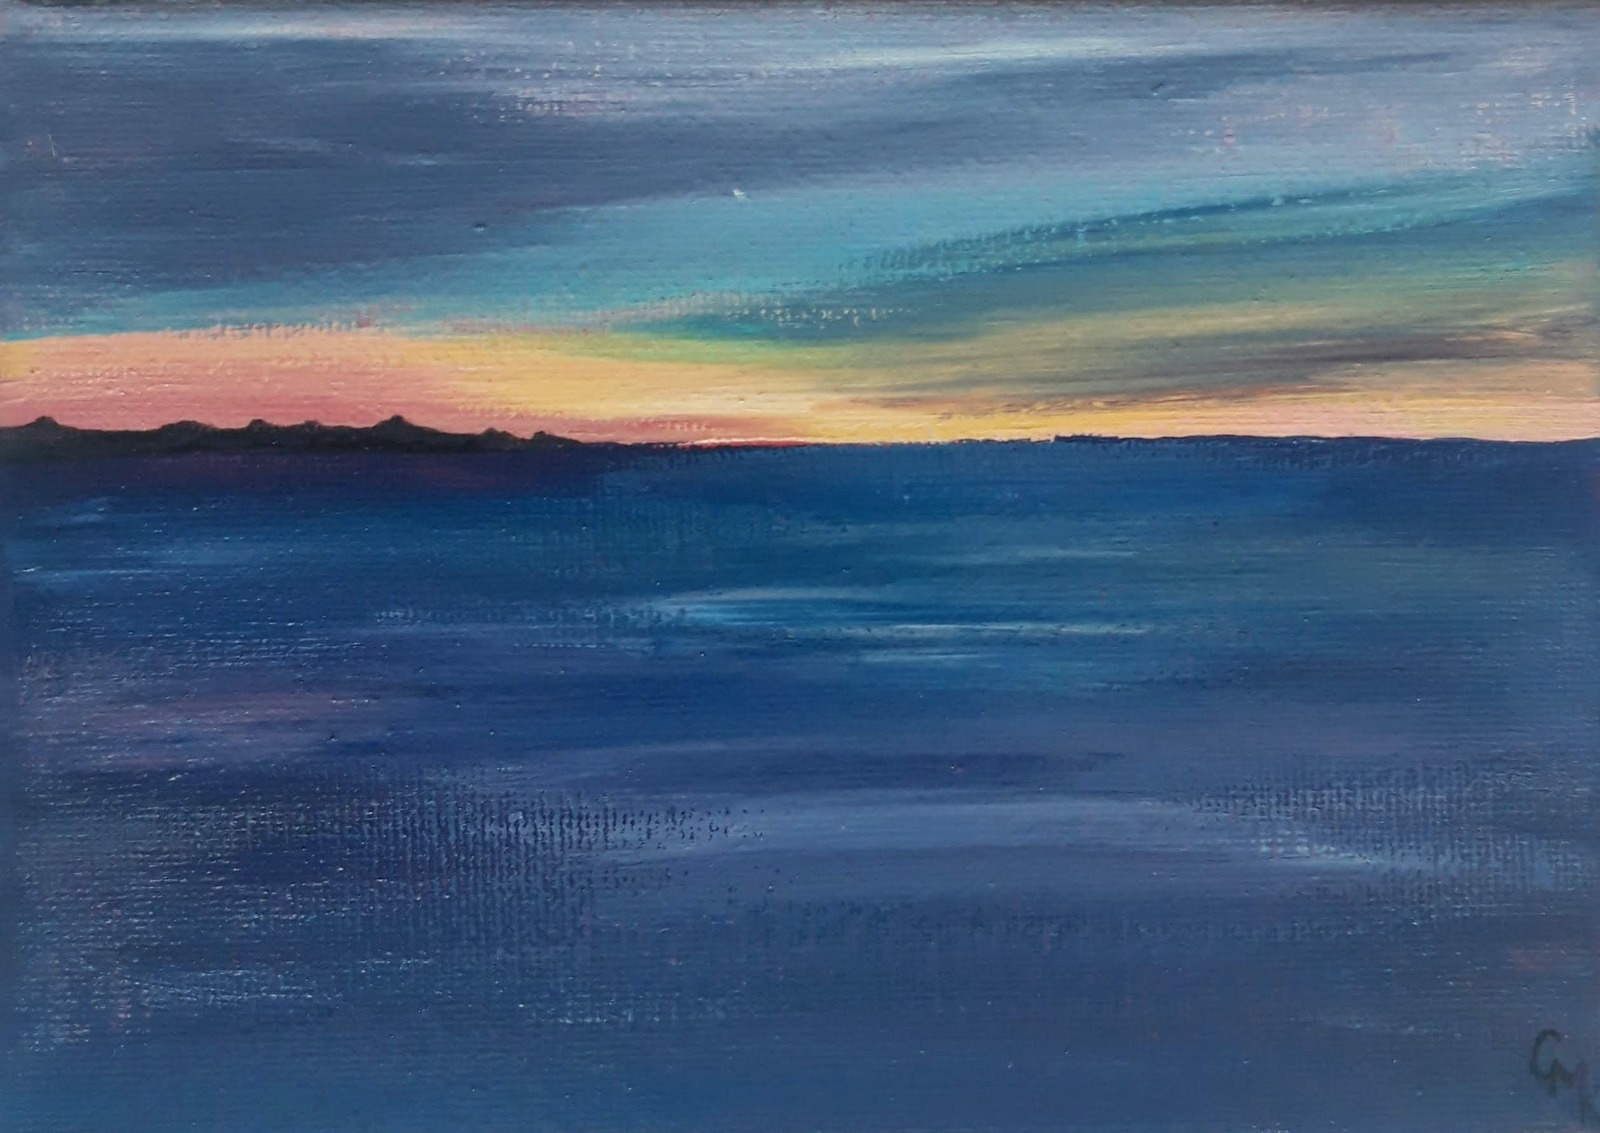 Annet Island Captured in the Sunset | Original Acrylic Painting